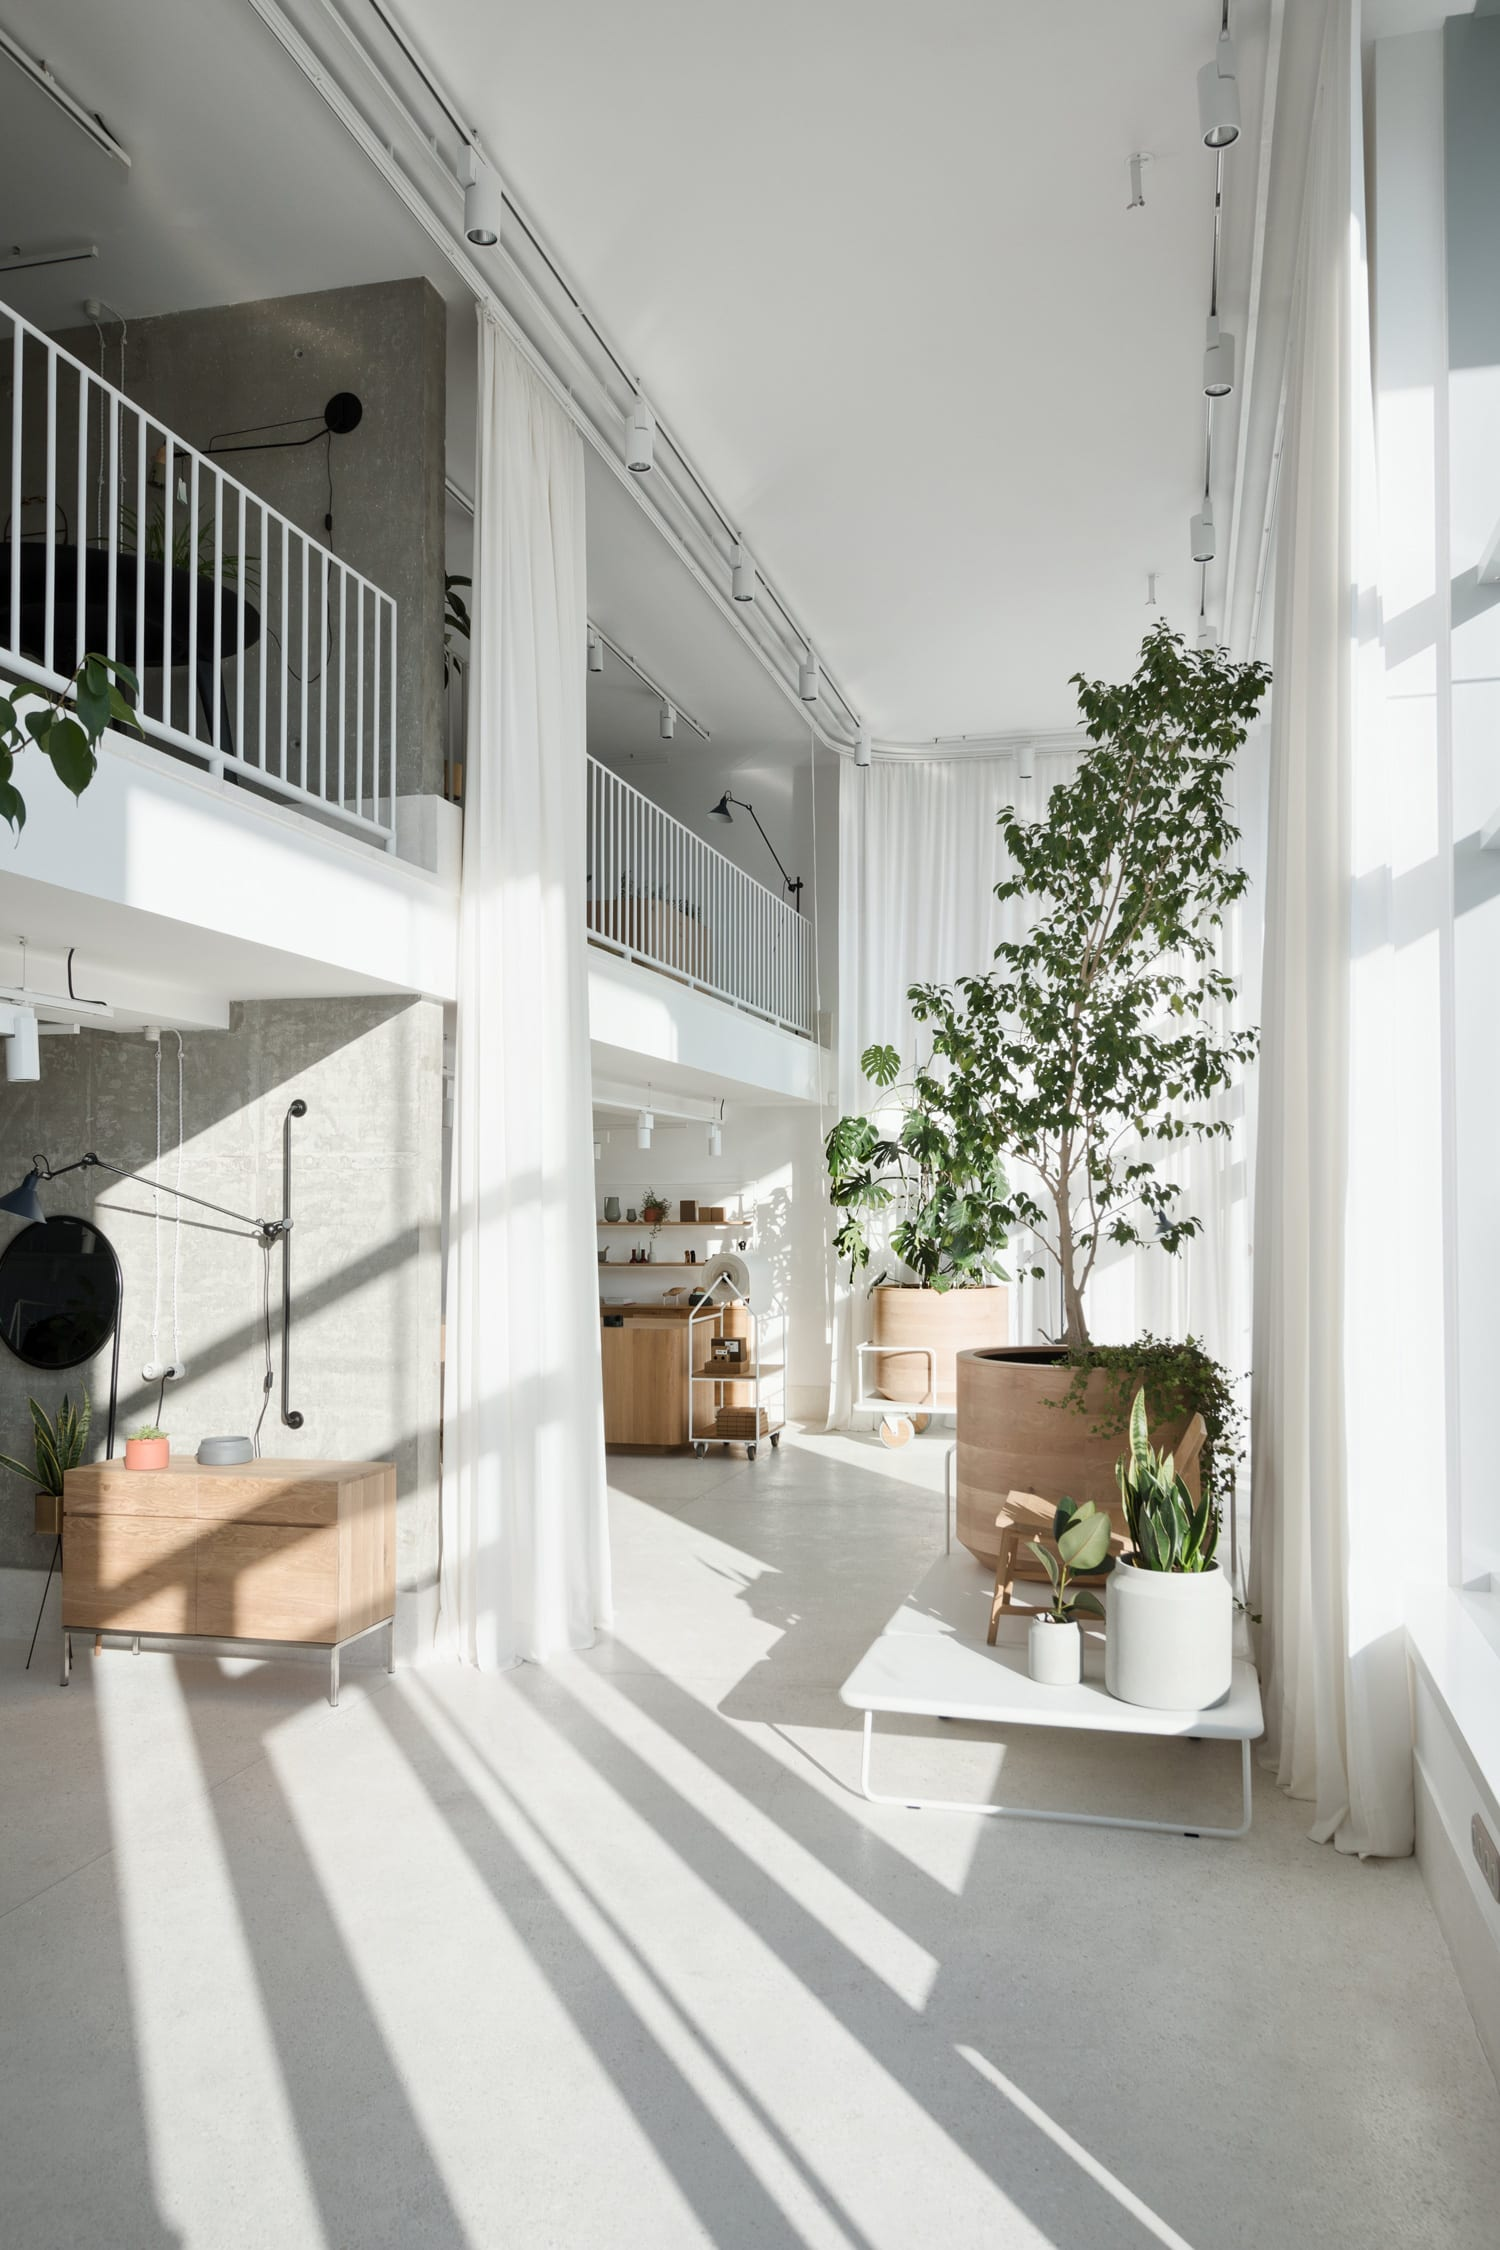 Gir Design Showroom in New Belgrade, Serbia by Studio AUTORI | Yellowtrace